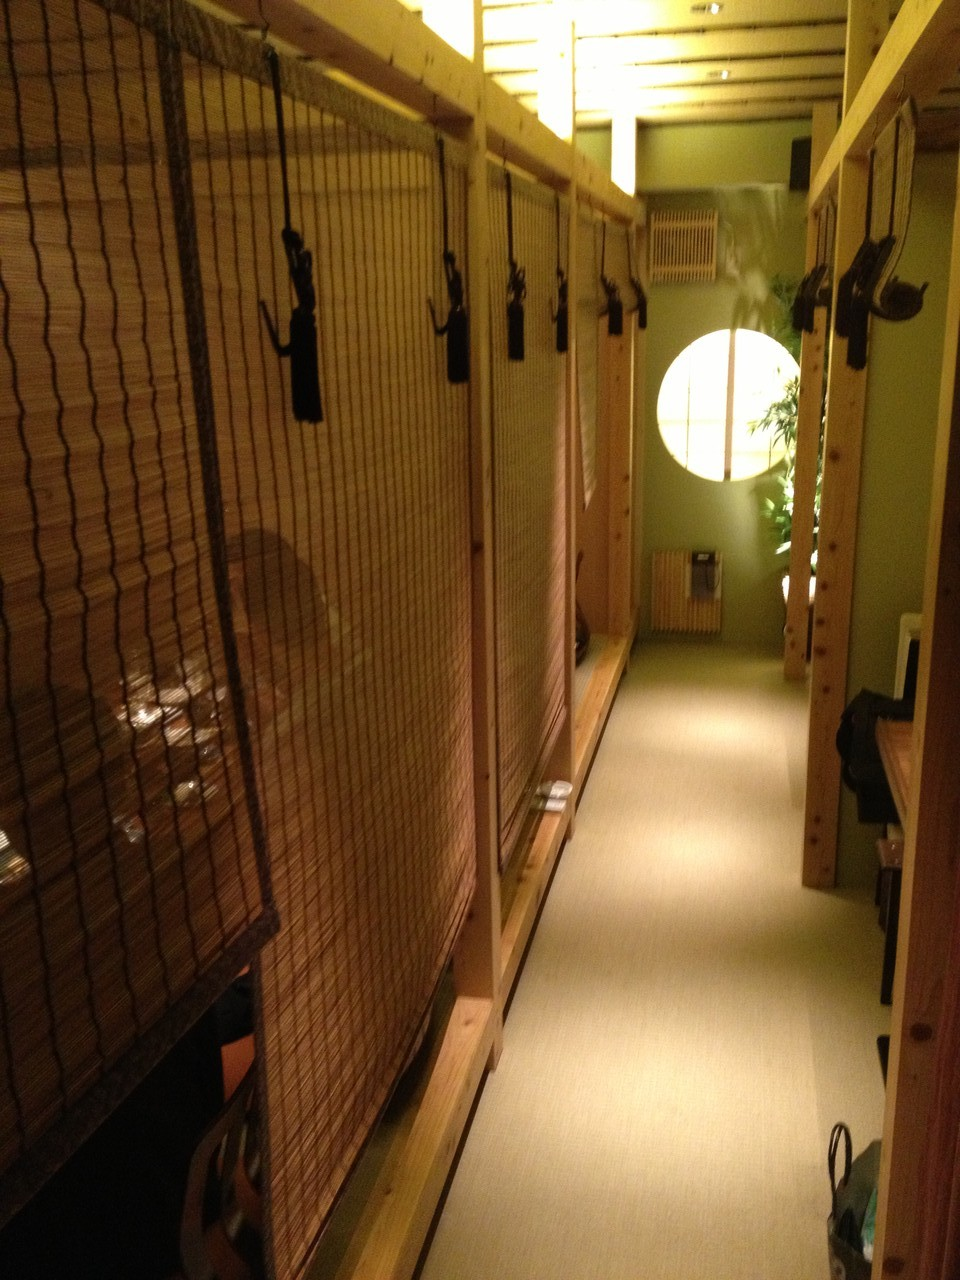 You eat in private booths to the left and right of the corridor ... — at Osaka.